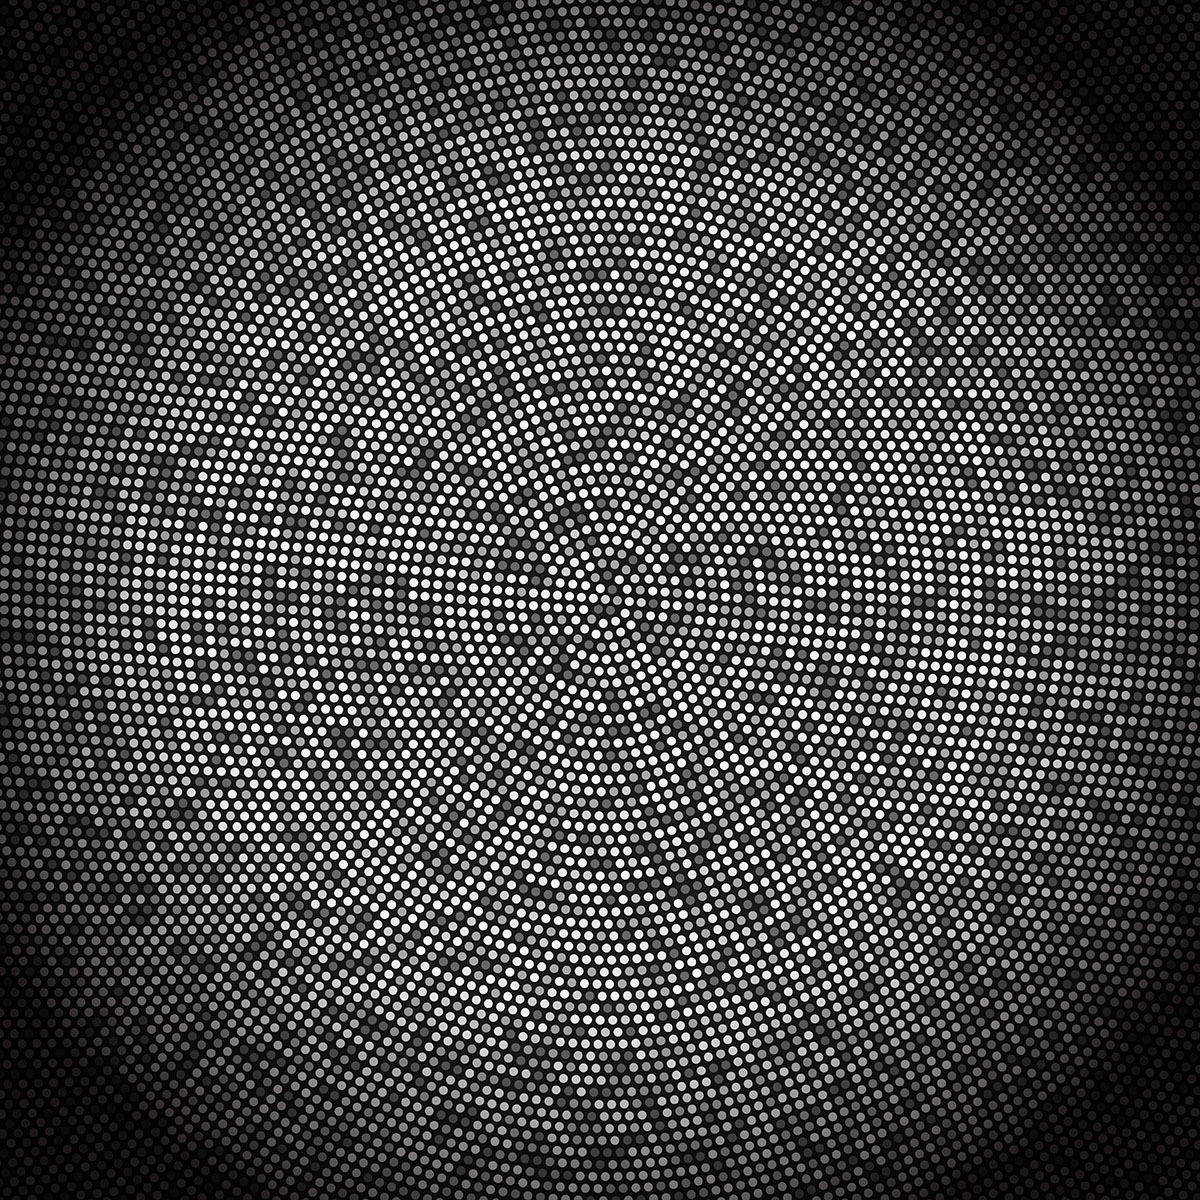 vector-abstract-halftone-background Web Template Design Free Download on